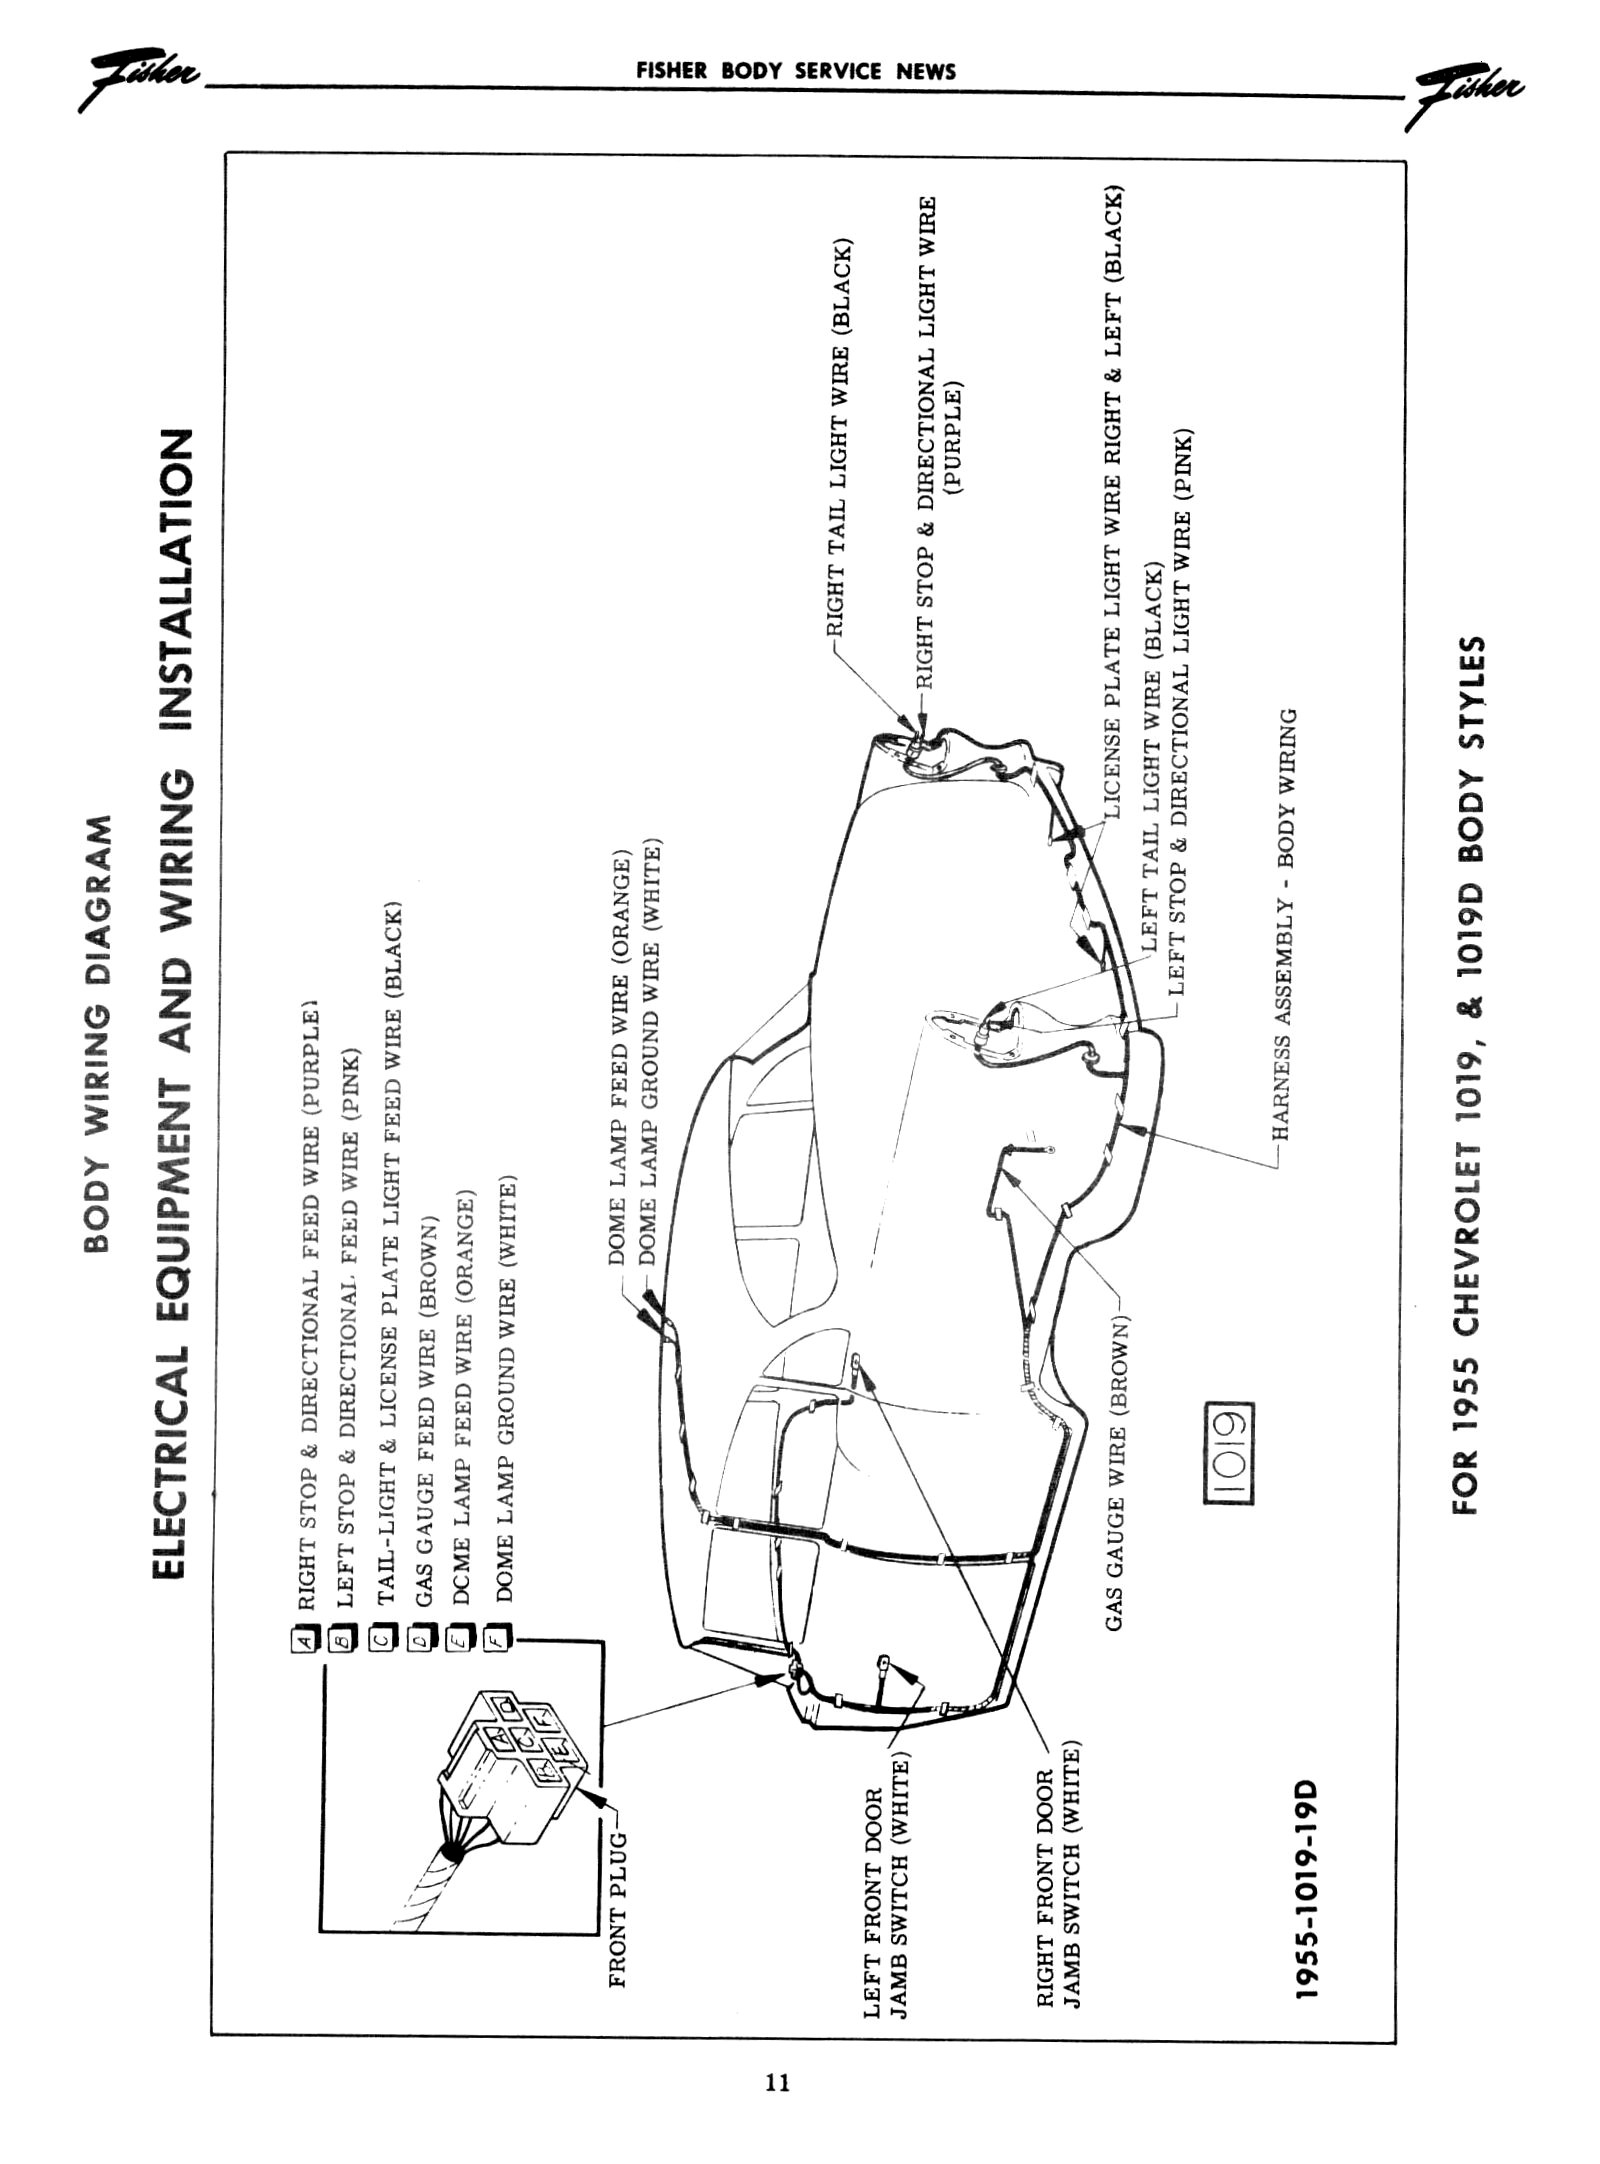 Chevy Dome Light Wiring Schematic 2019 Trx250r Diagram Door Switch 55 Data Schematics Rh Xrkarting Com 1950 Cobalt